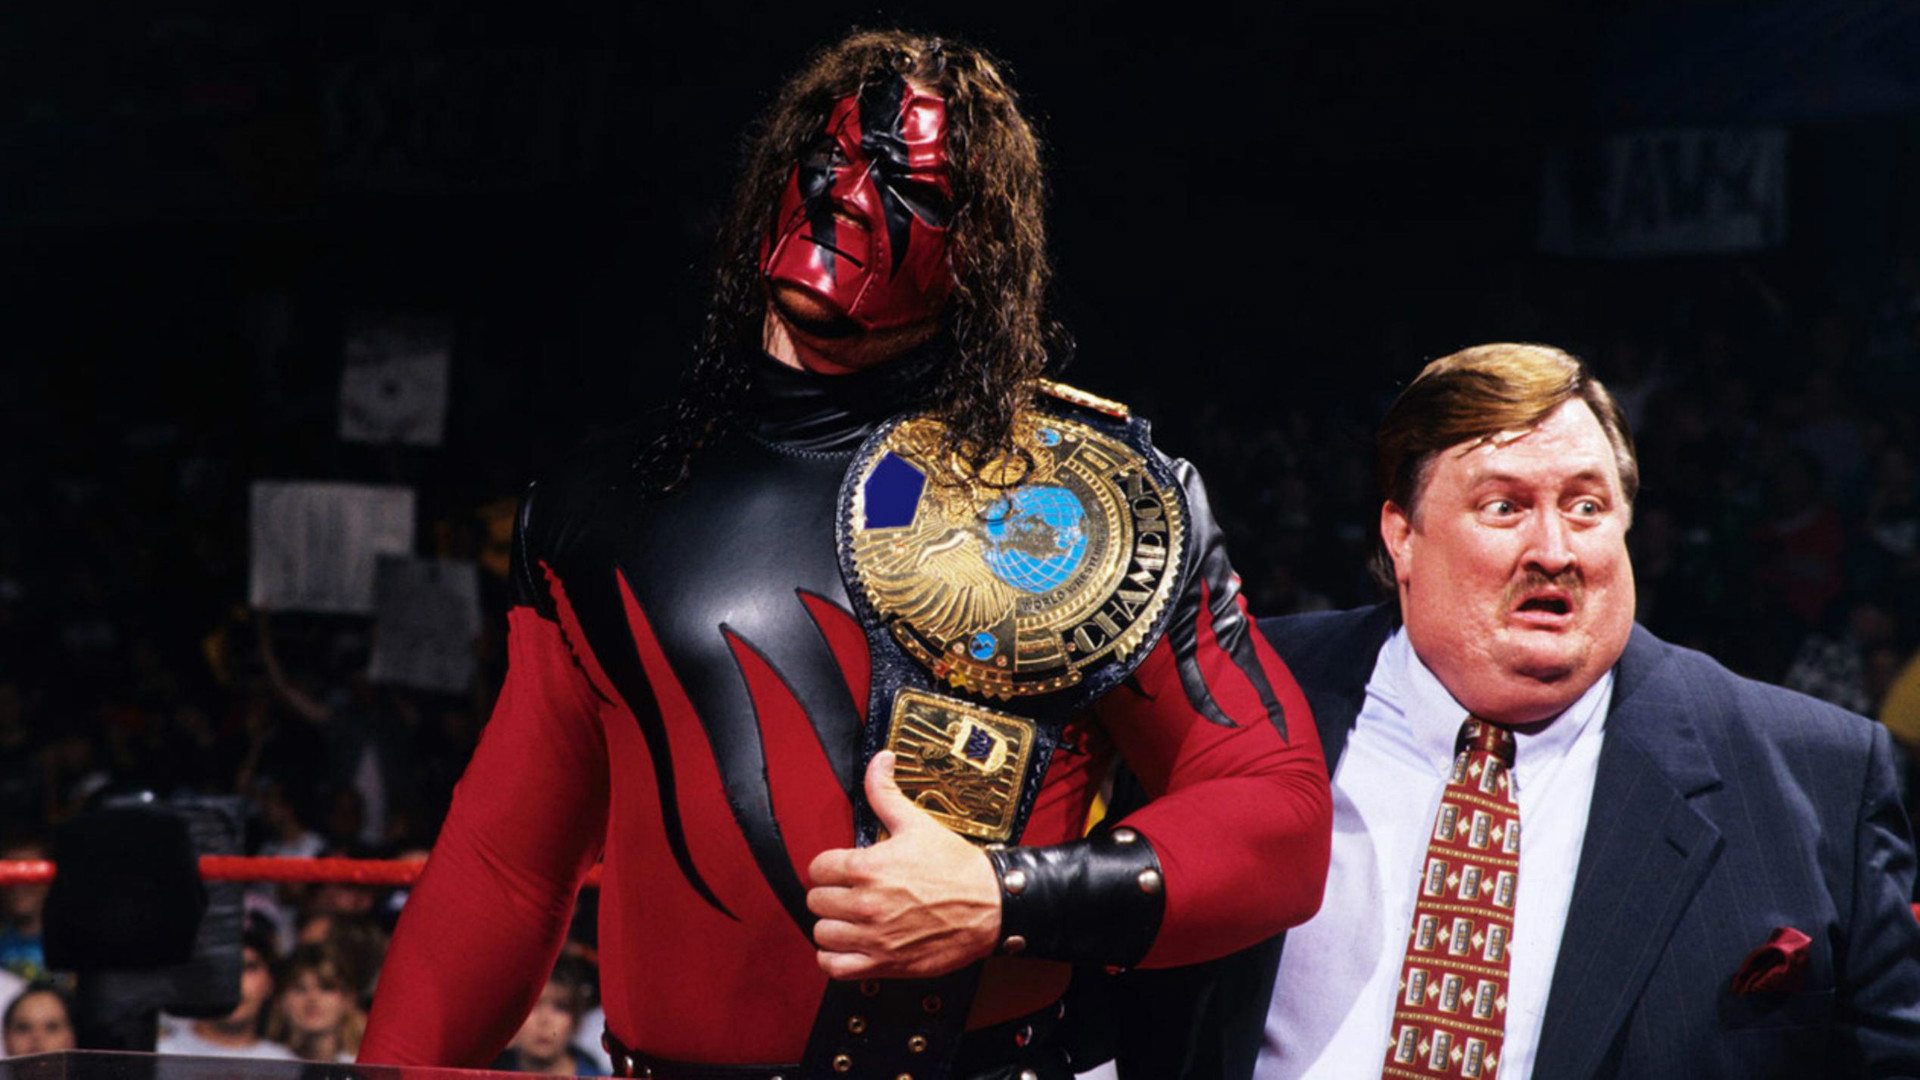 Kane from back in the day.